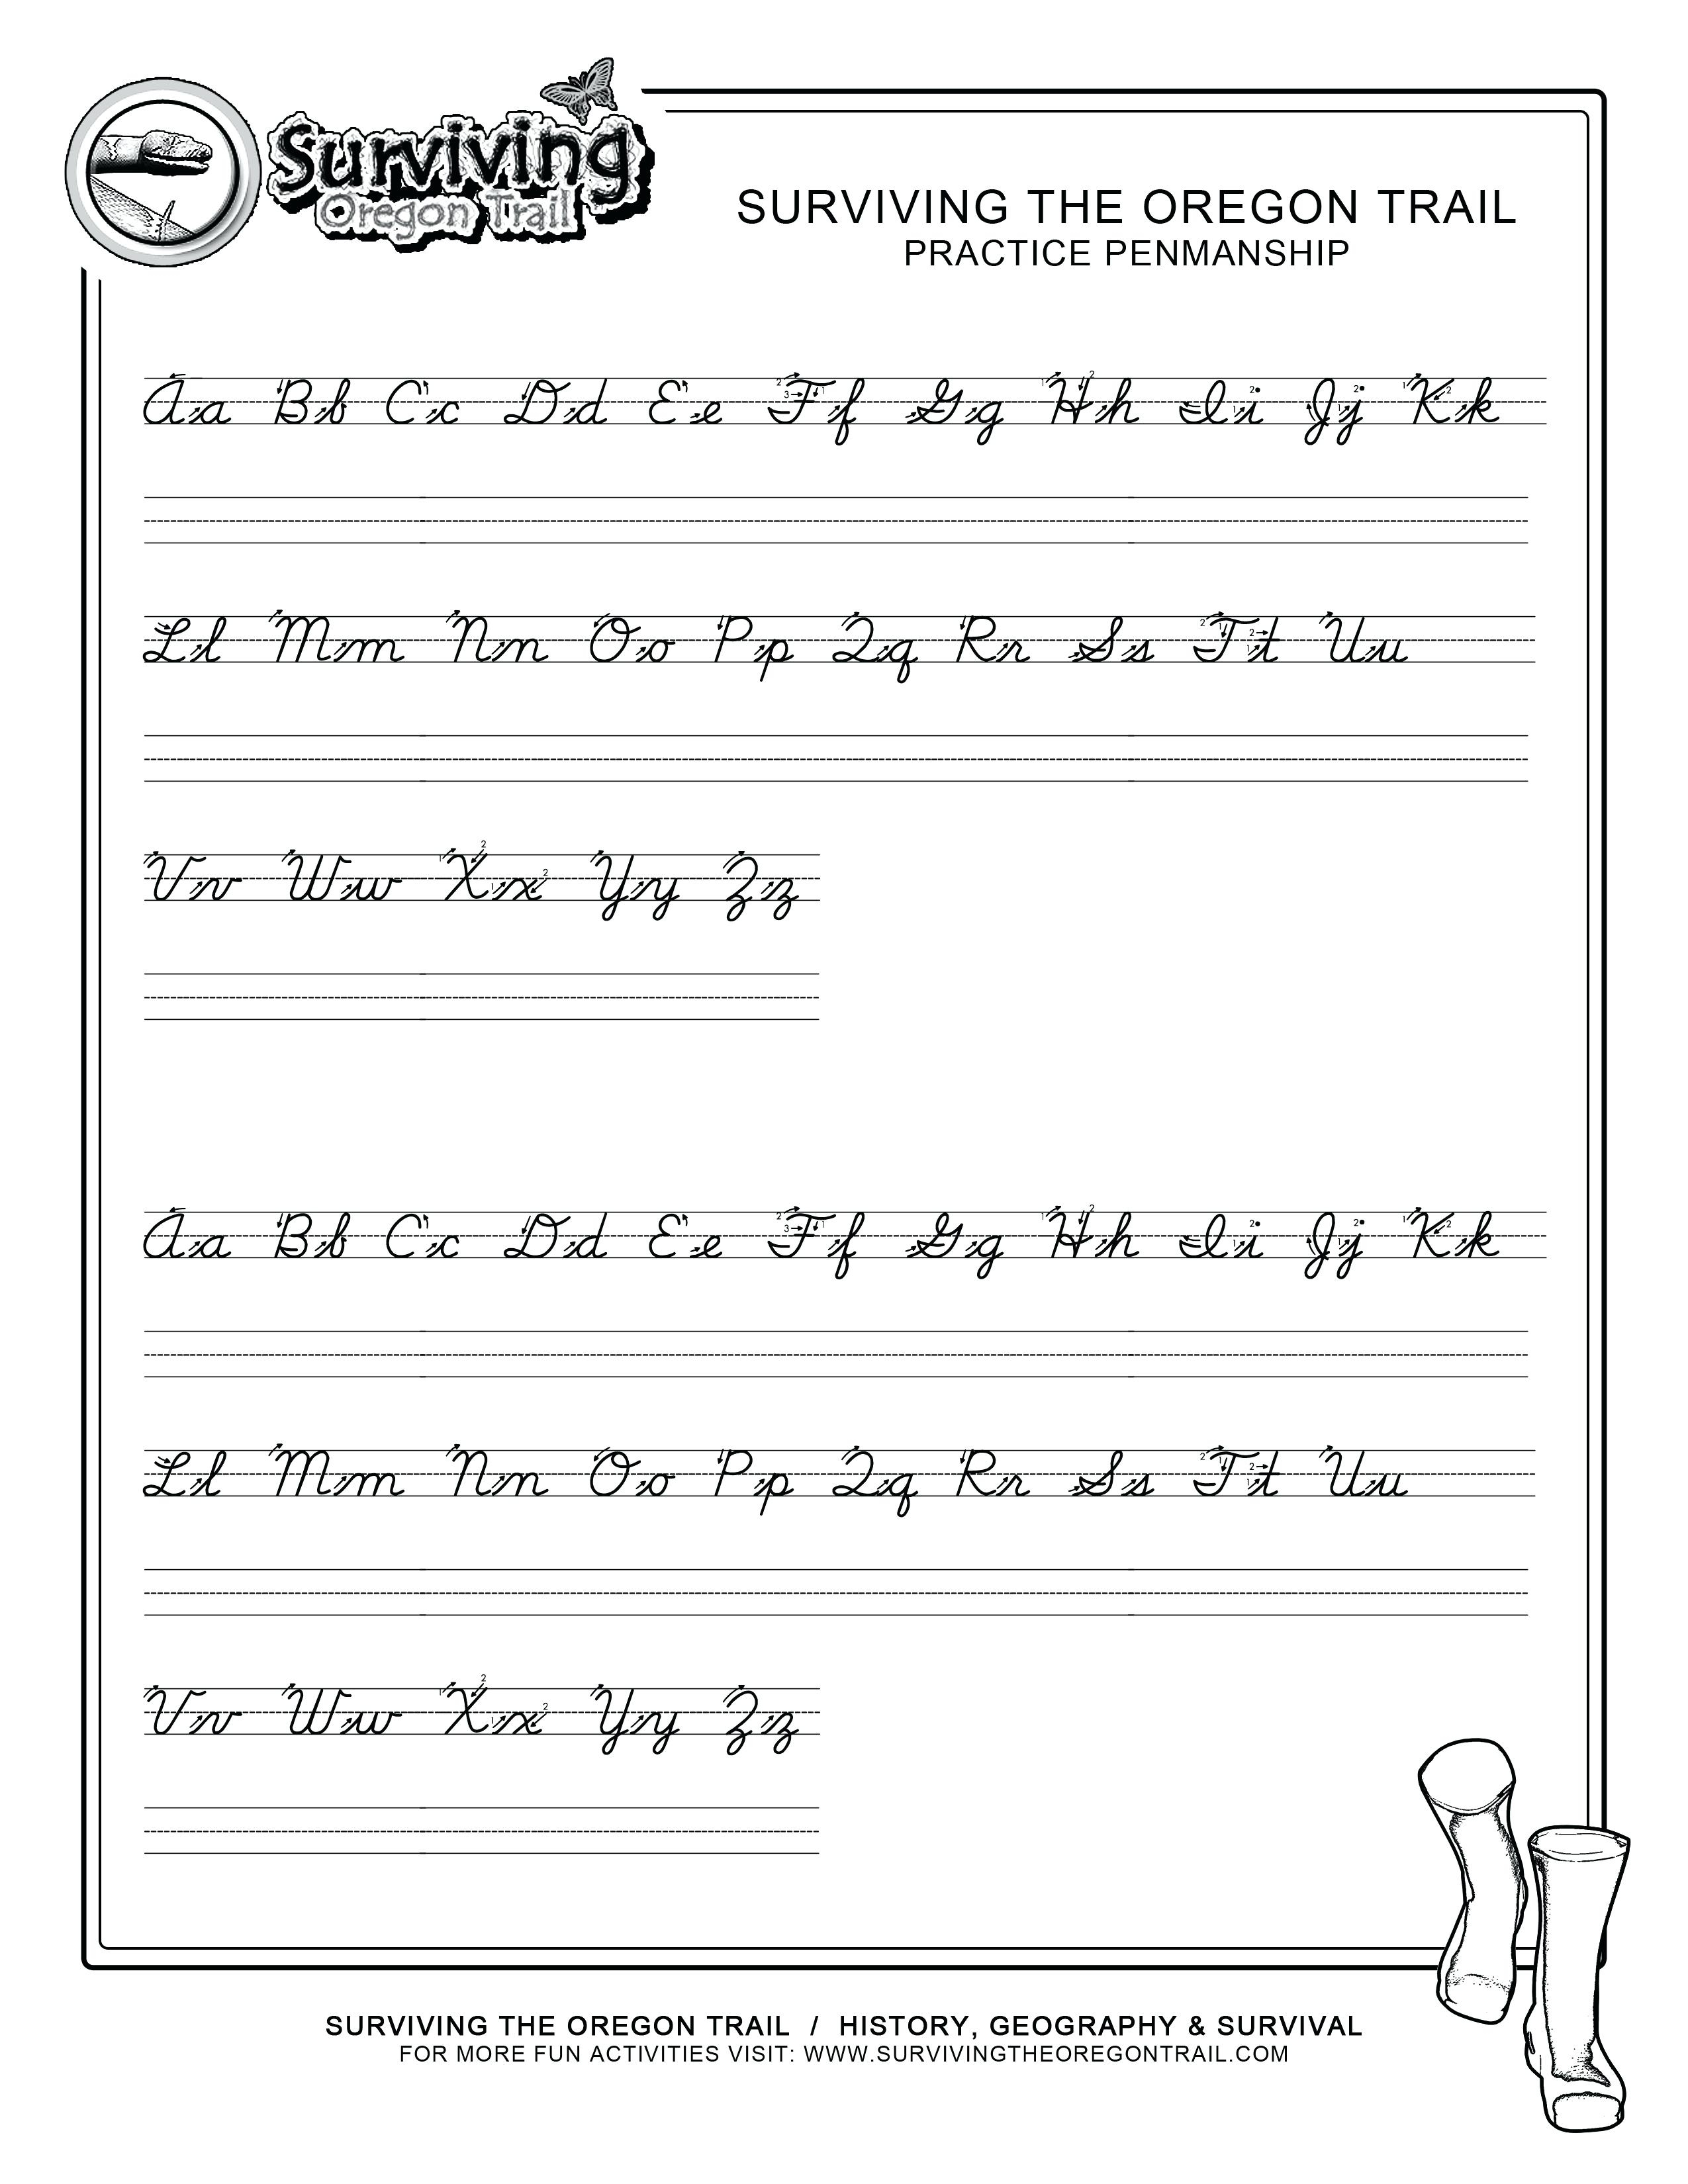 Cursive Handwriting Sheet - Karis.sticken.co | Printable Cursive Handwriting Worksheet Generator